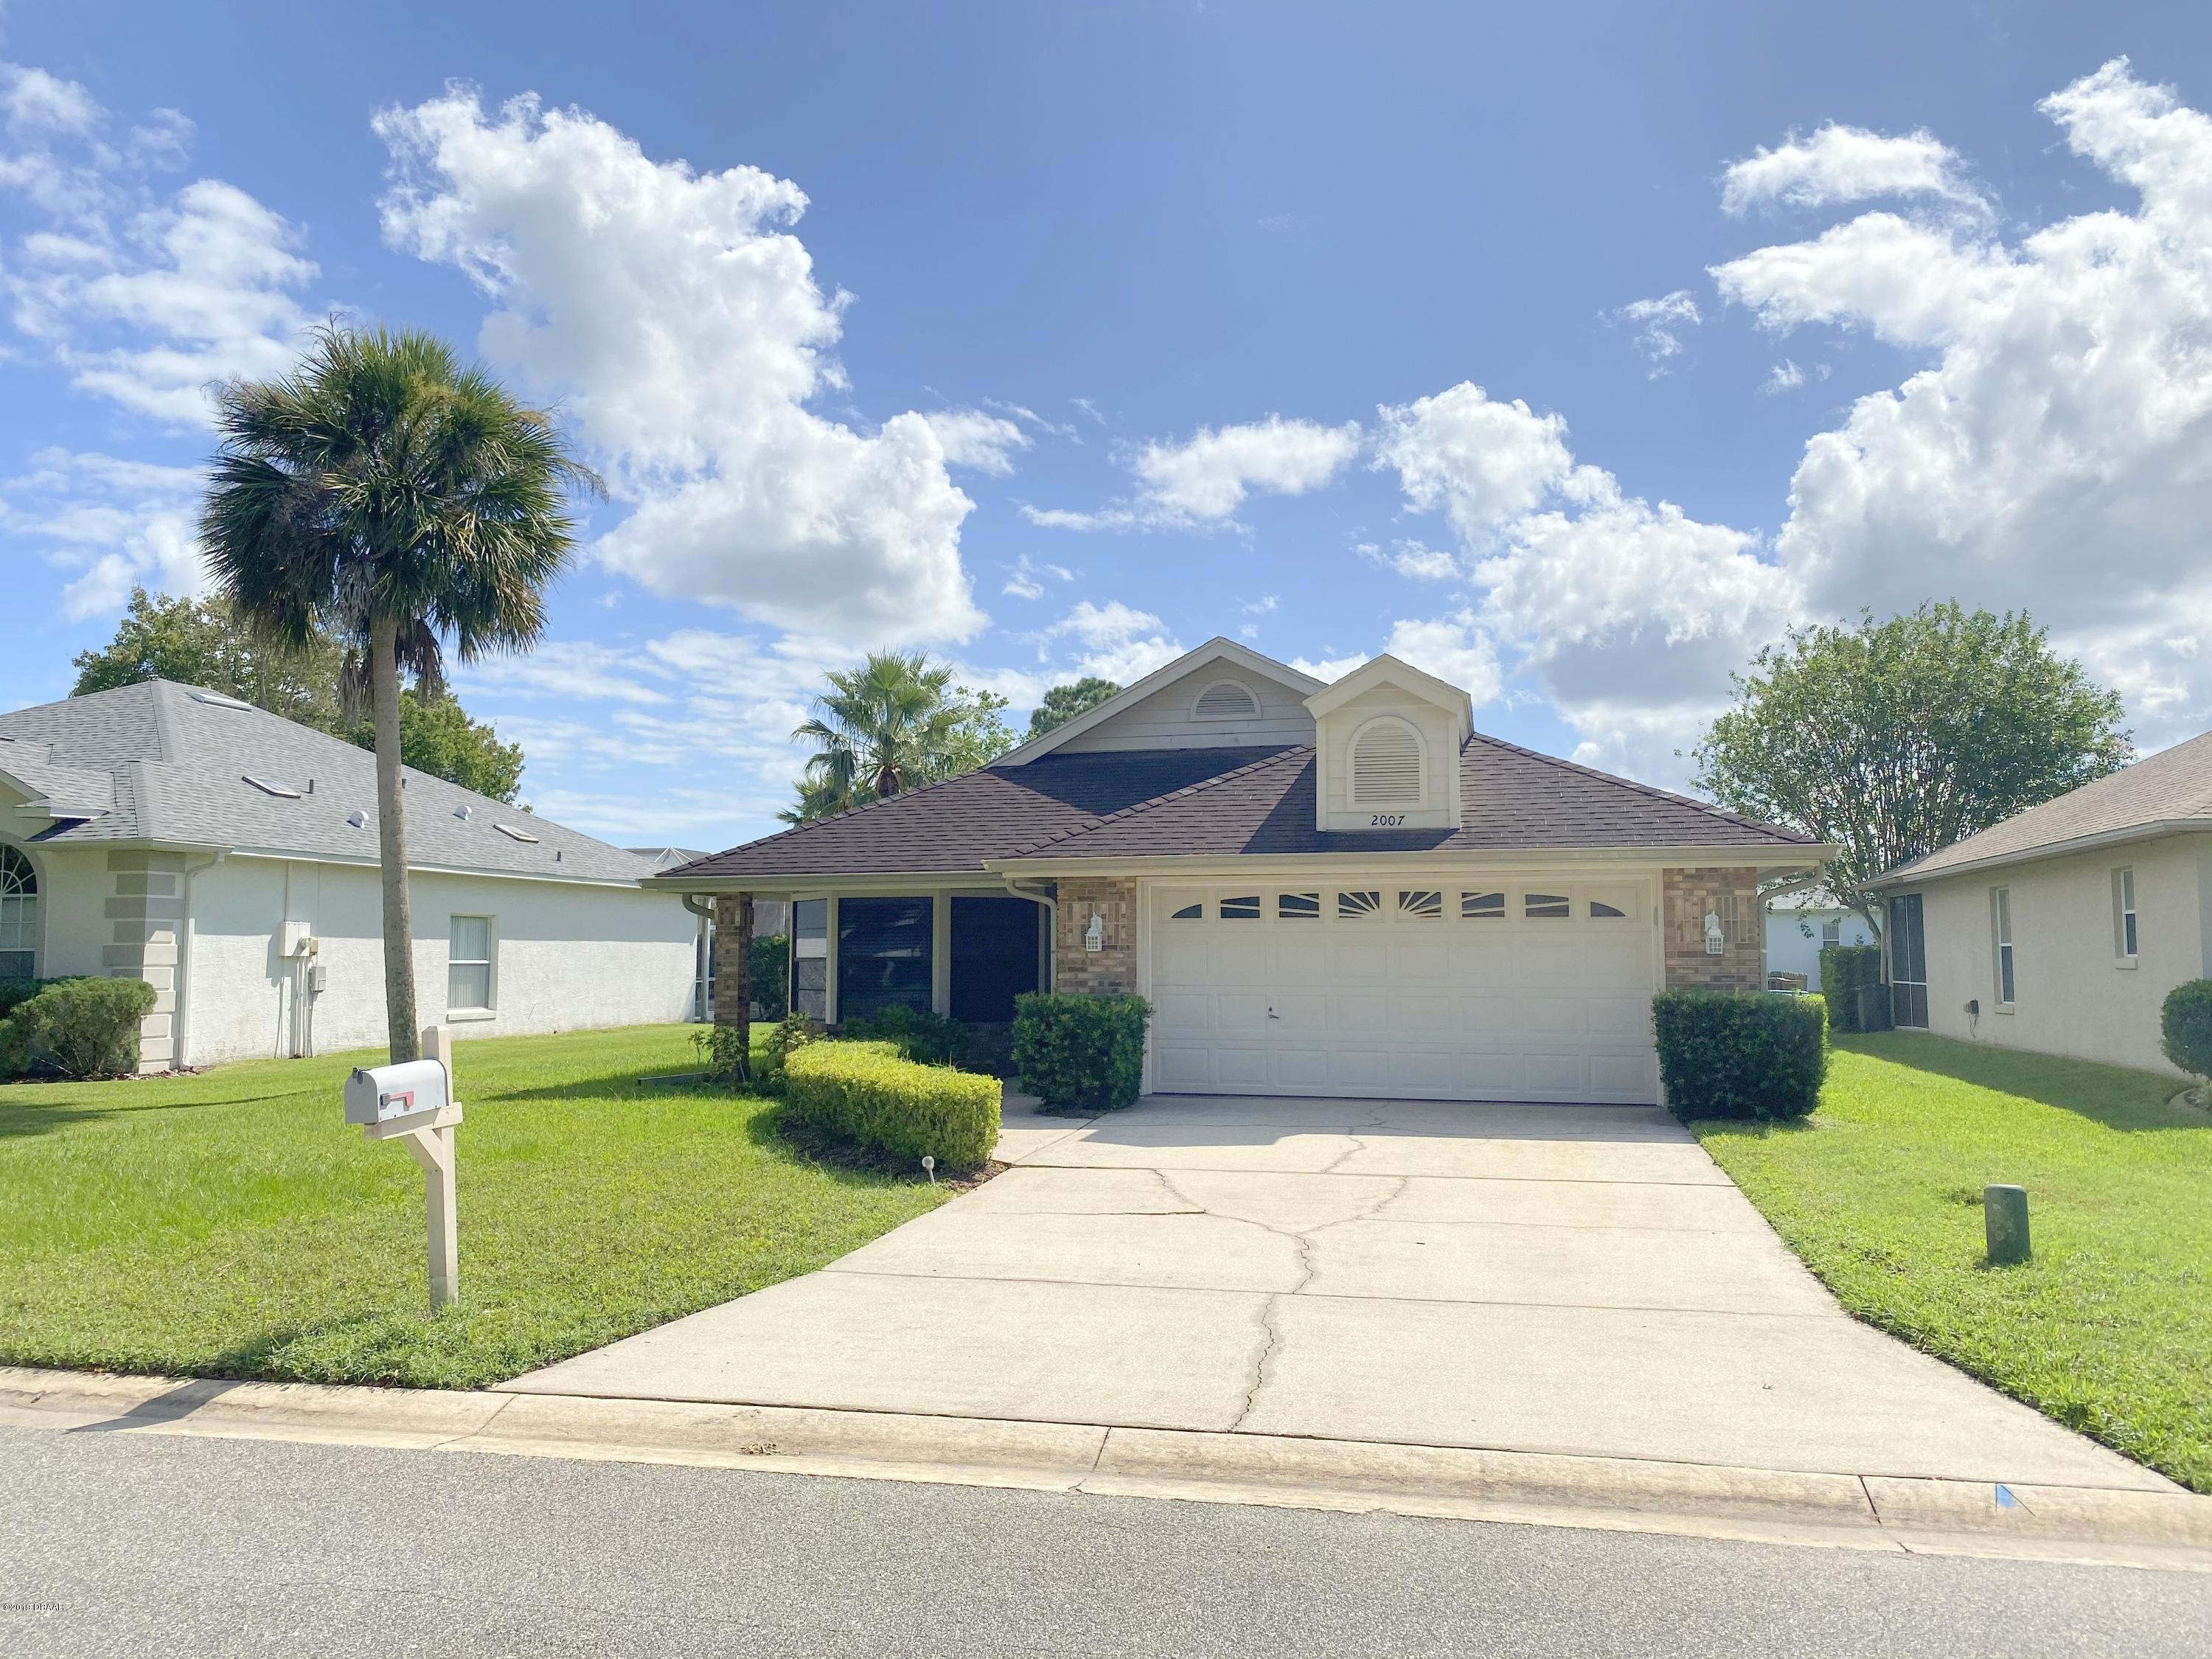 2007 Beaver Creek Drive, Port Orange, FL 32128